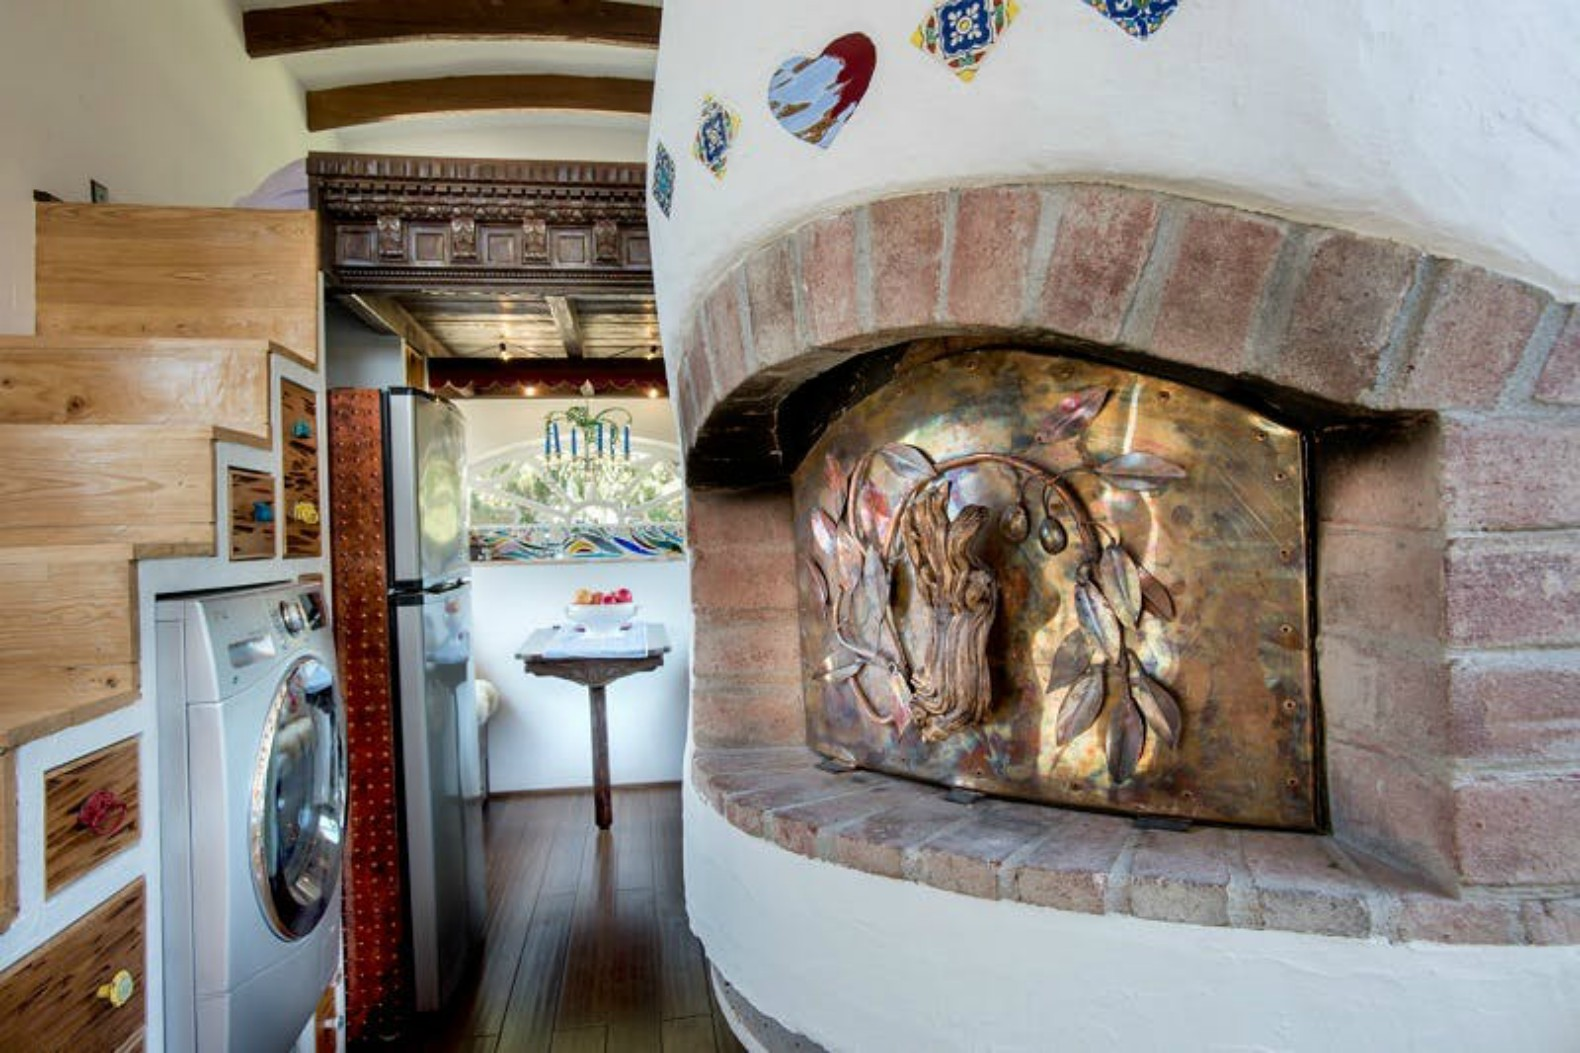 This whimsical tiny house with its own pizza oven was built for just